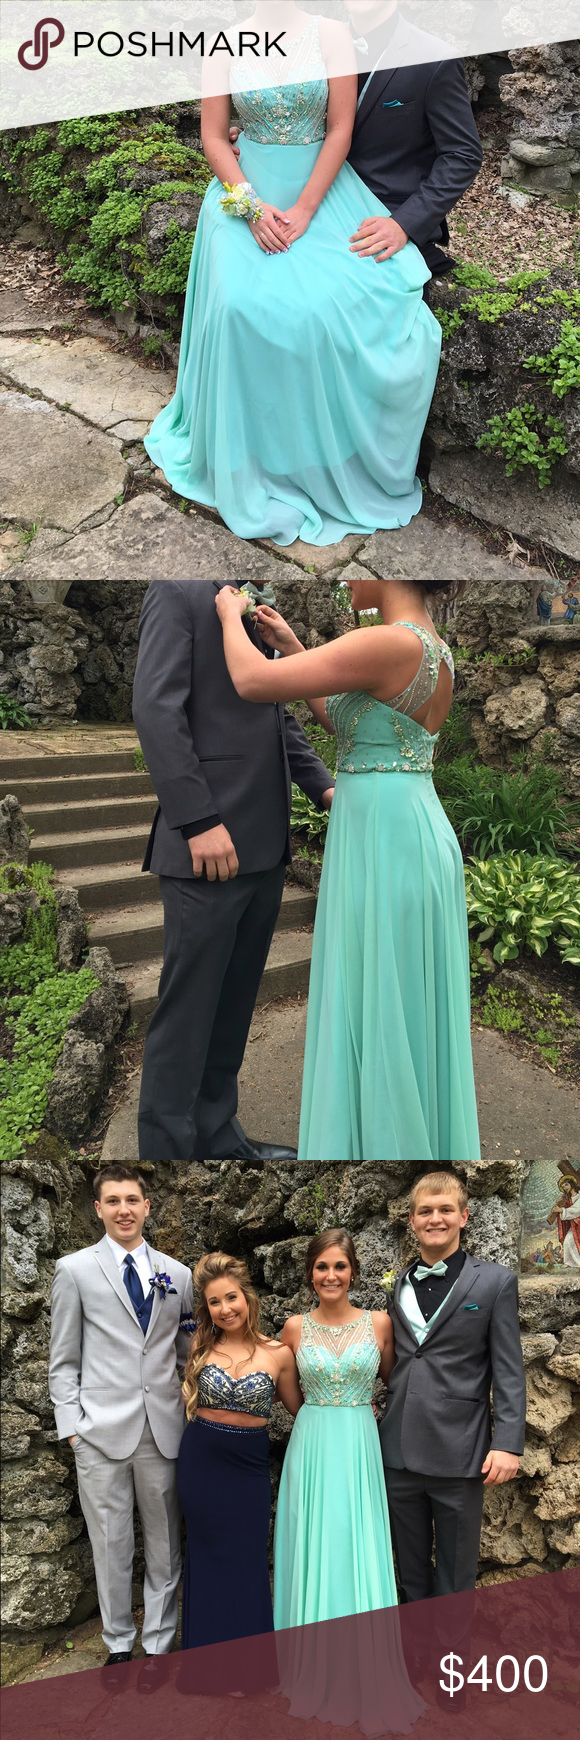 Prom dress turquoise prom dresses light turquoise and prom